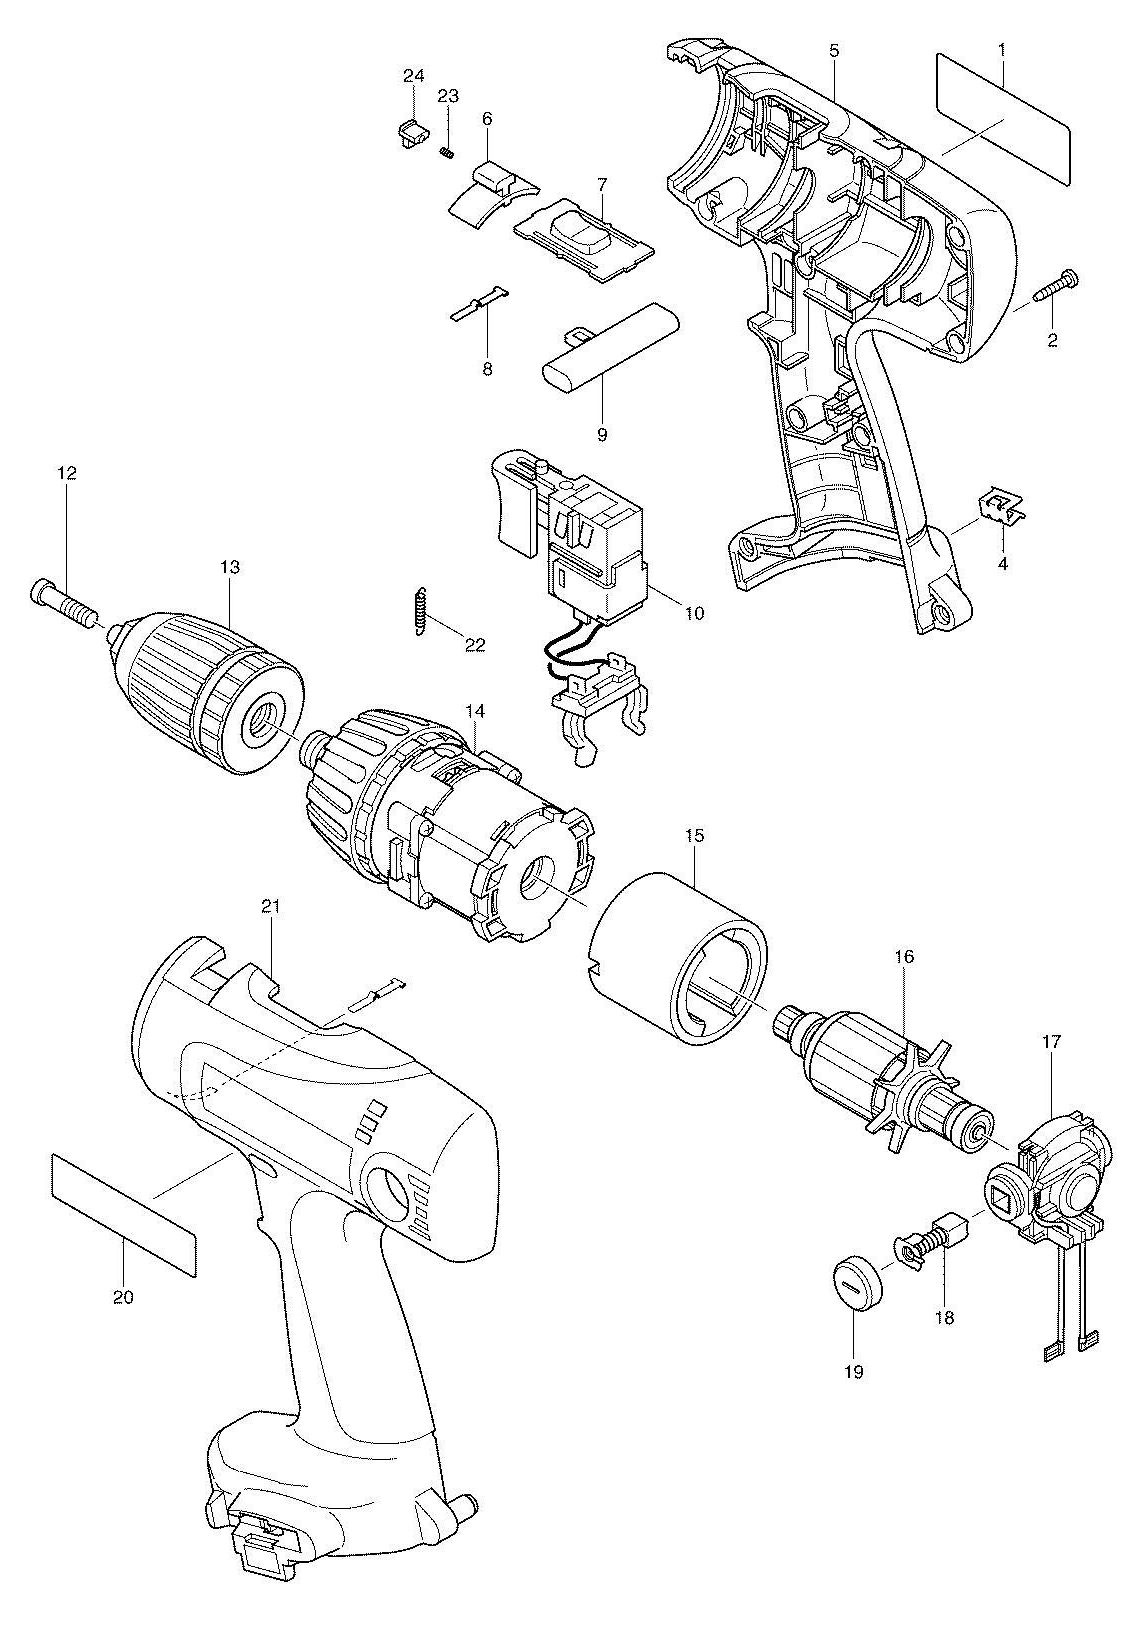 parts of a drill bit diagram chevy 350 engine wiring spares for makita 6337d driver spare from